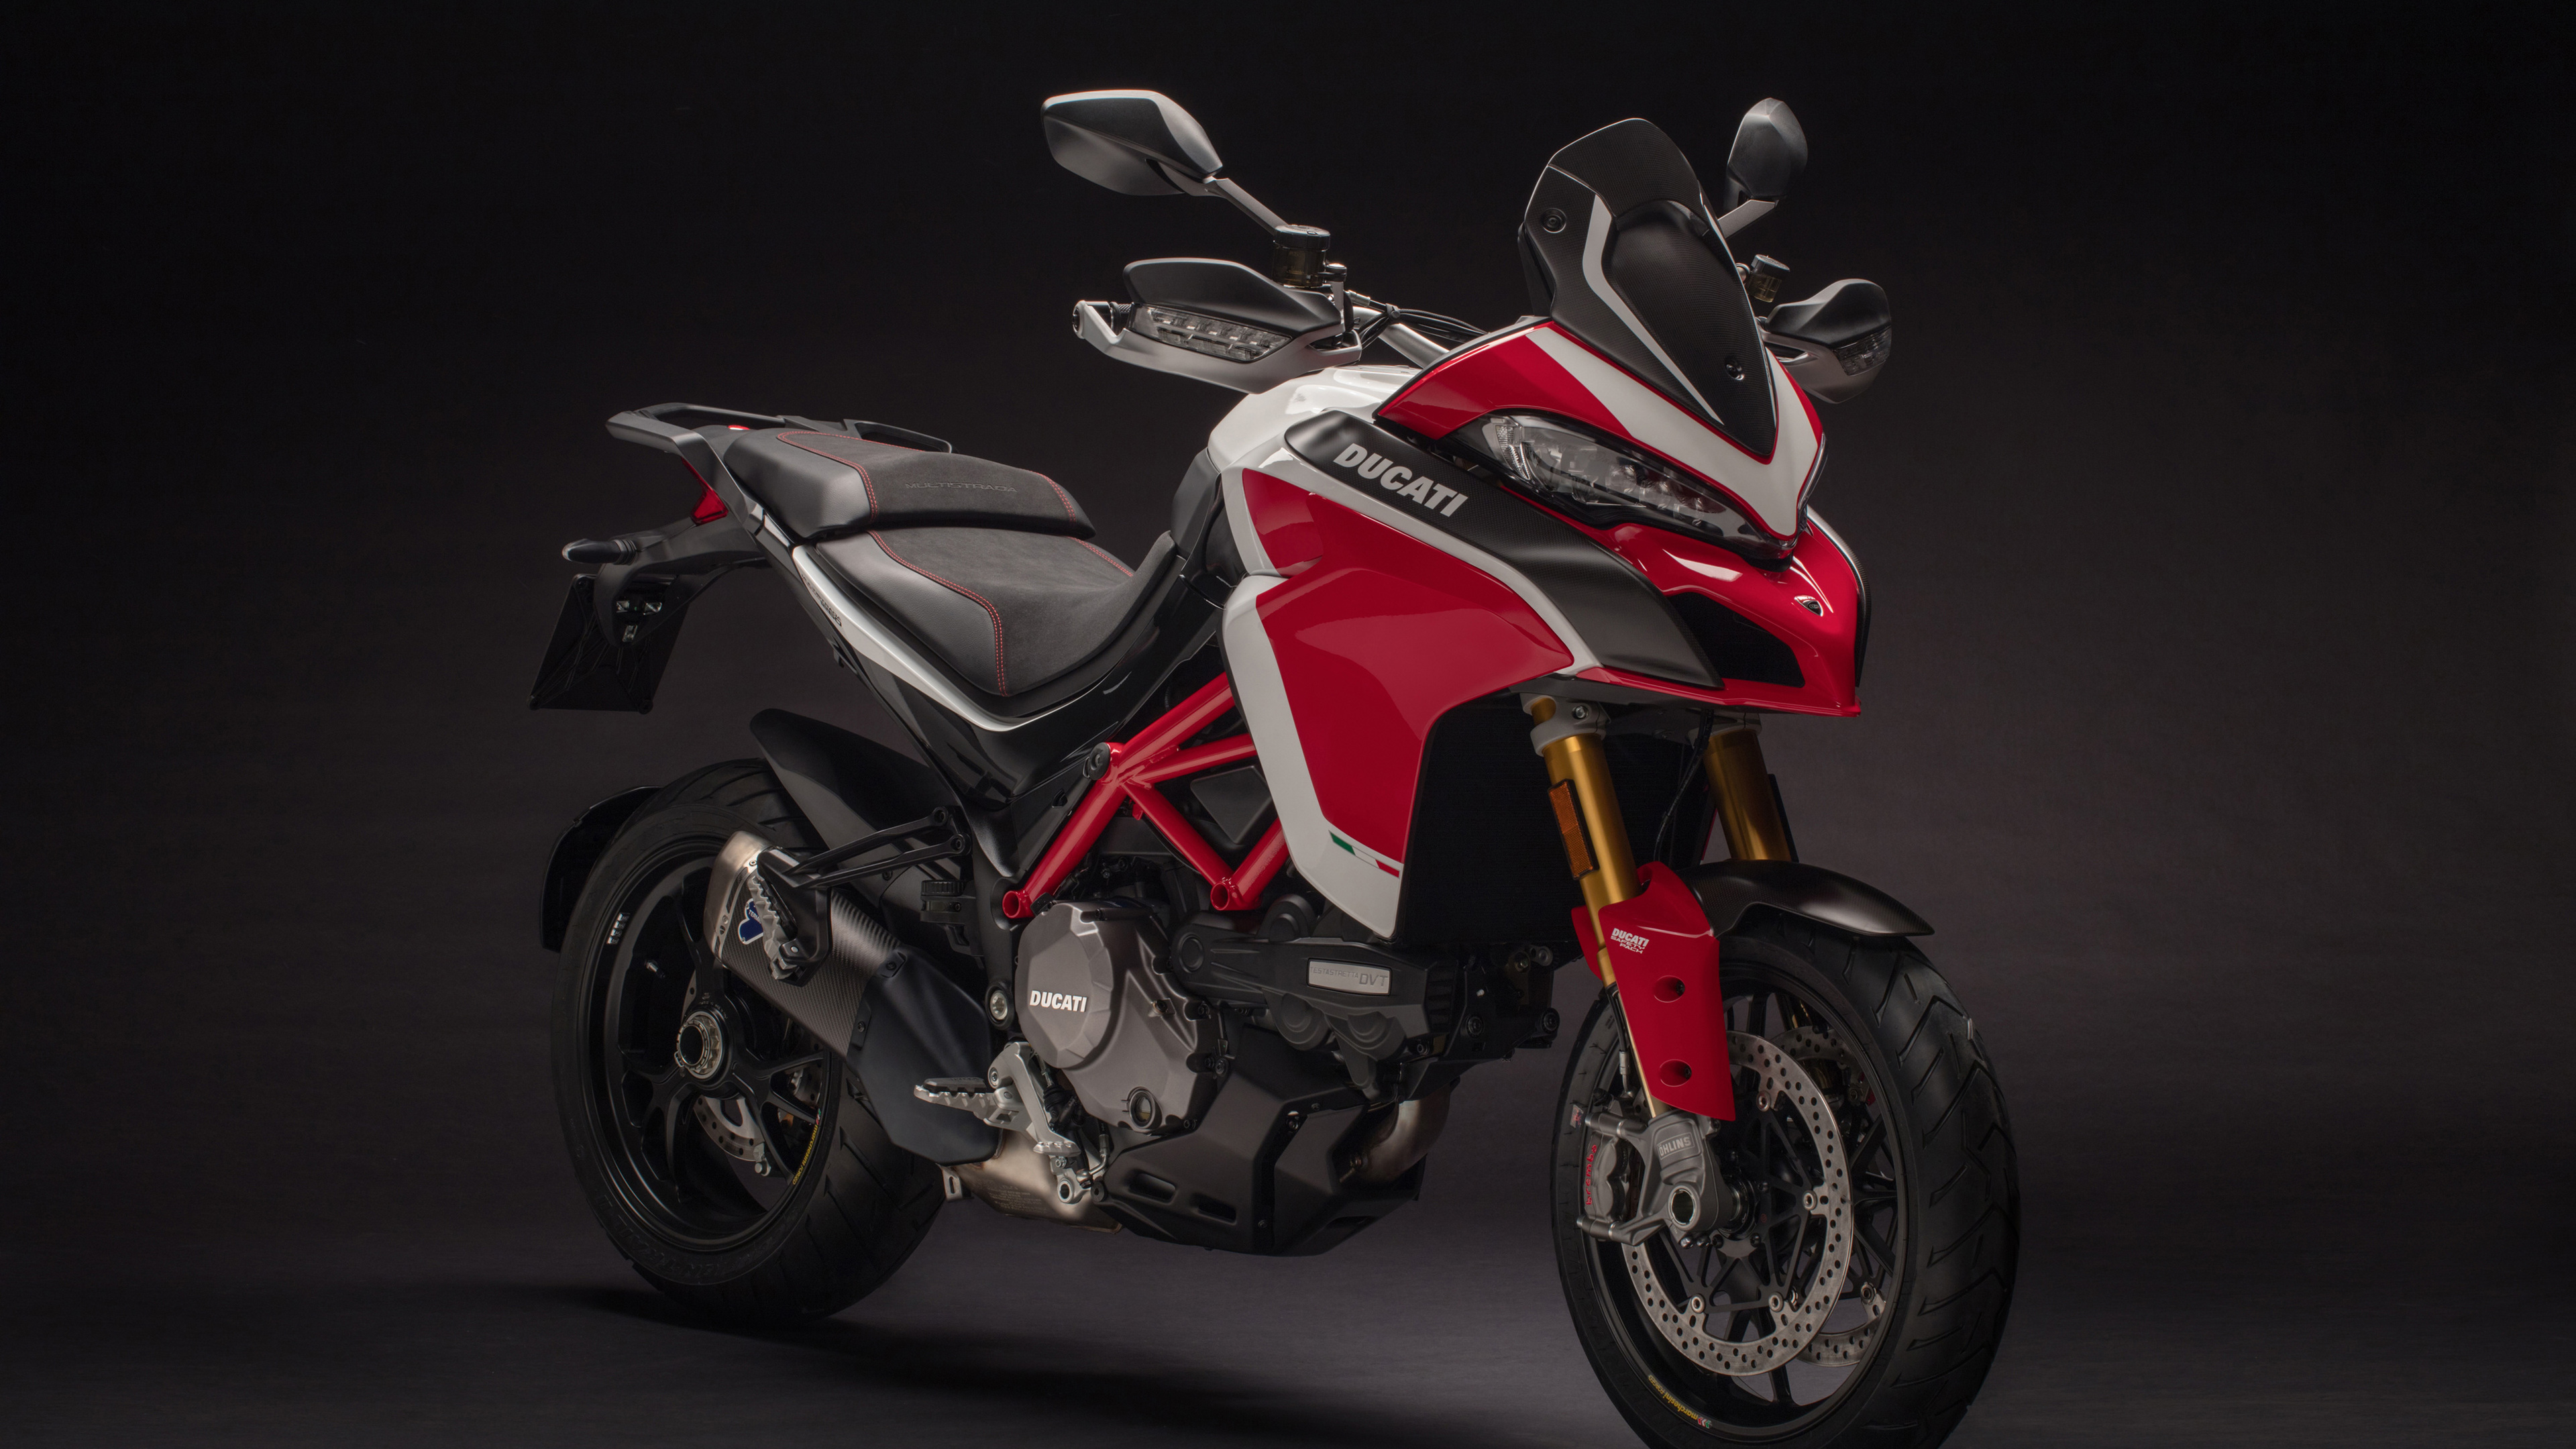 ducati multistrada 1260 s 4k 1536316356 - Ducati Multistrada 1260 S 4k - hd-wallpapers, ducati wallpapers, ducat multistrada 1260 wallpapers, 4k-wallpapers, 2018 bikes wallpapers